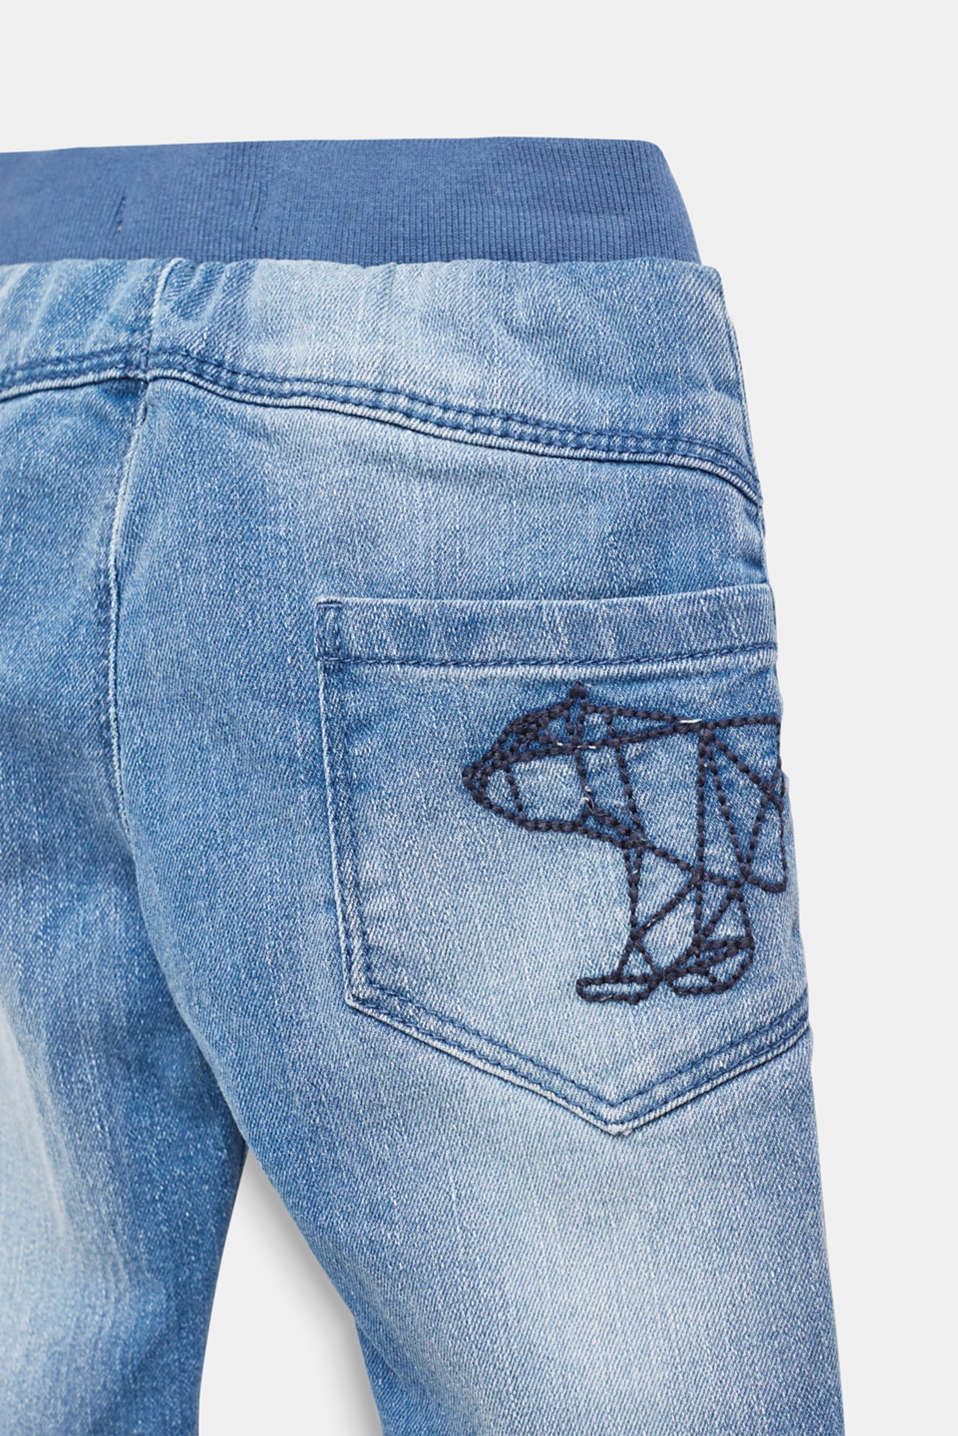 Jeans with a ribbed waistband and jersey lining, LCBLUE LIGHT WAS, detail image number 2